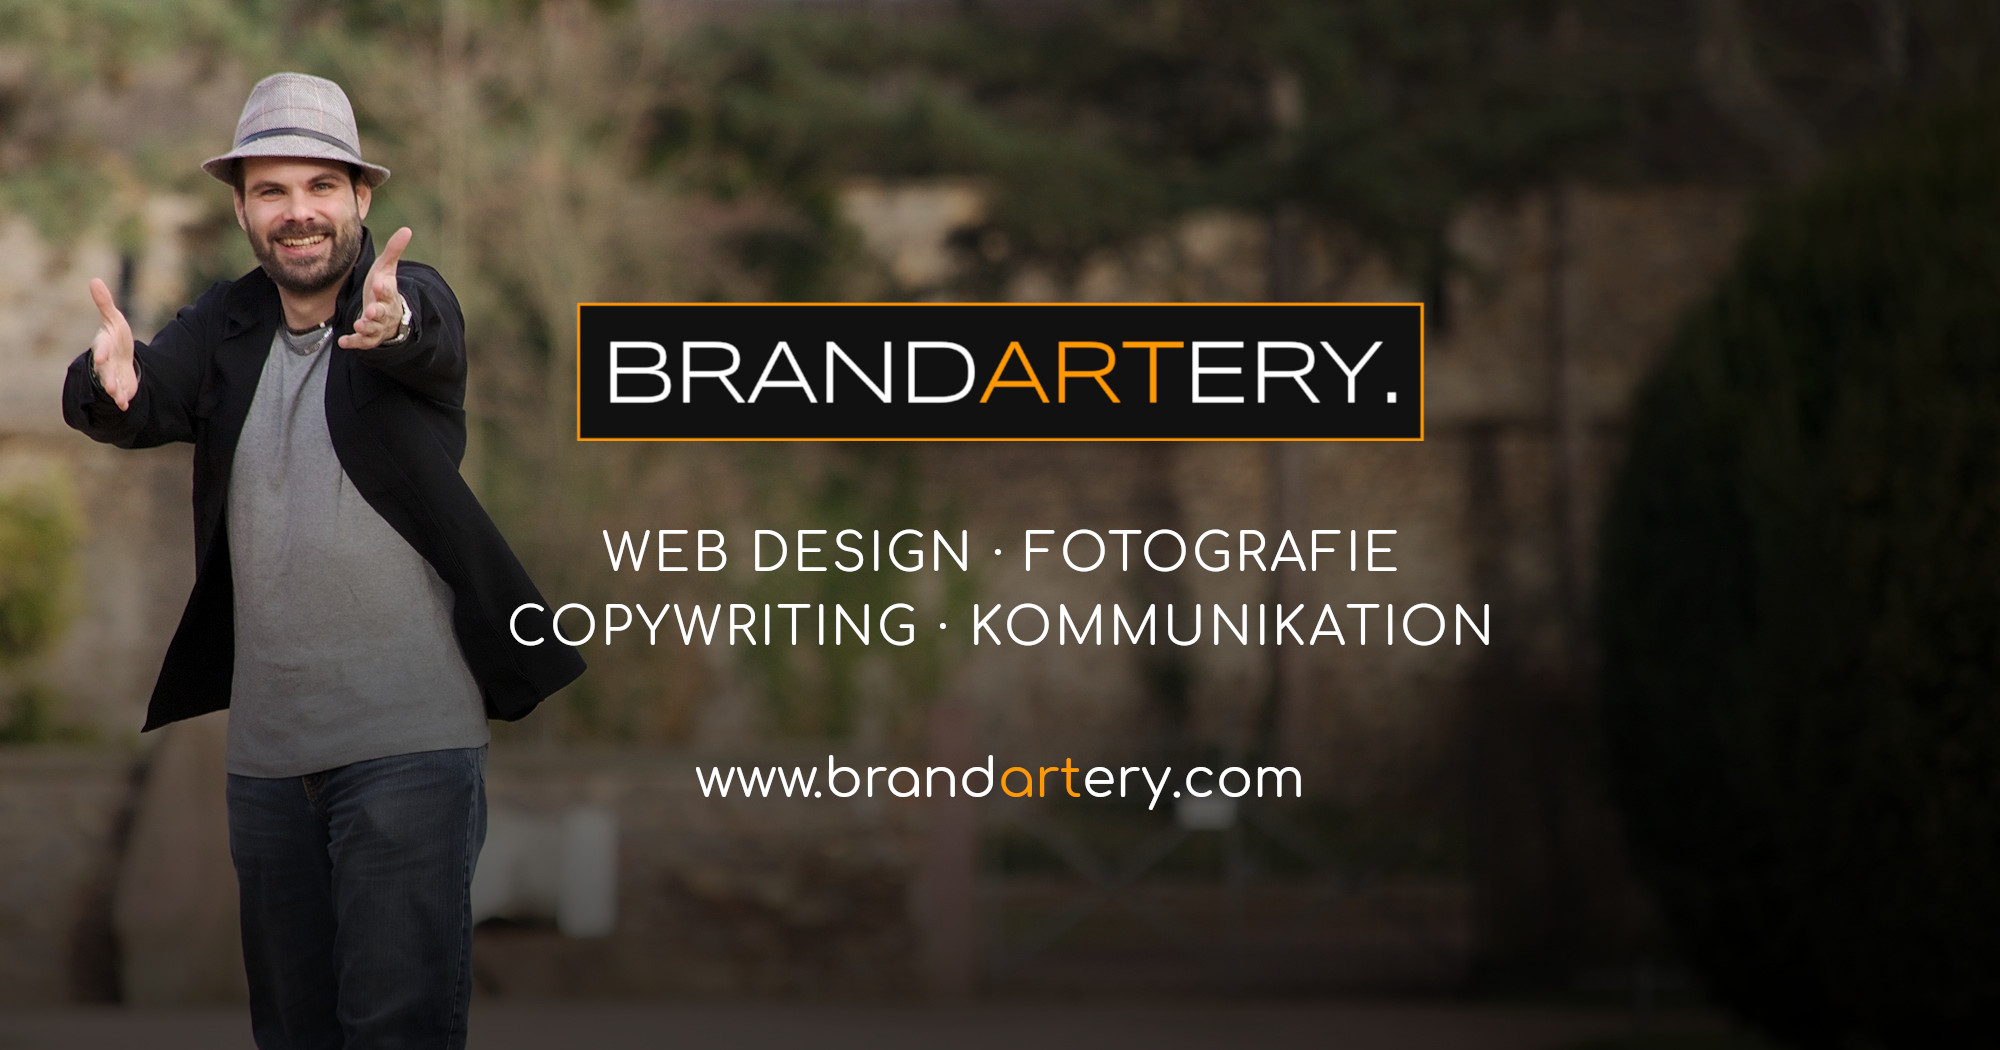 OpenGraph: Facebook » Web Design · Communication · Storytelling » Brand Artery